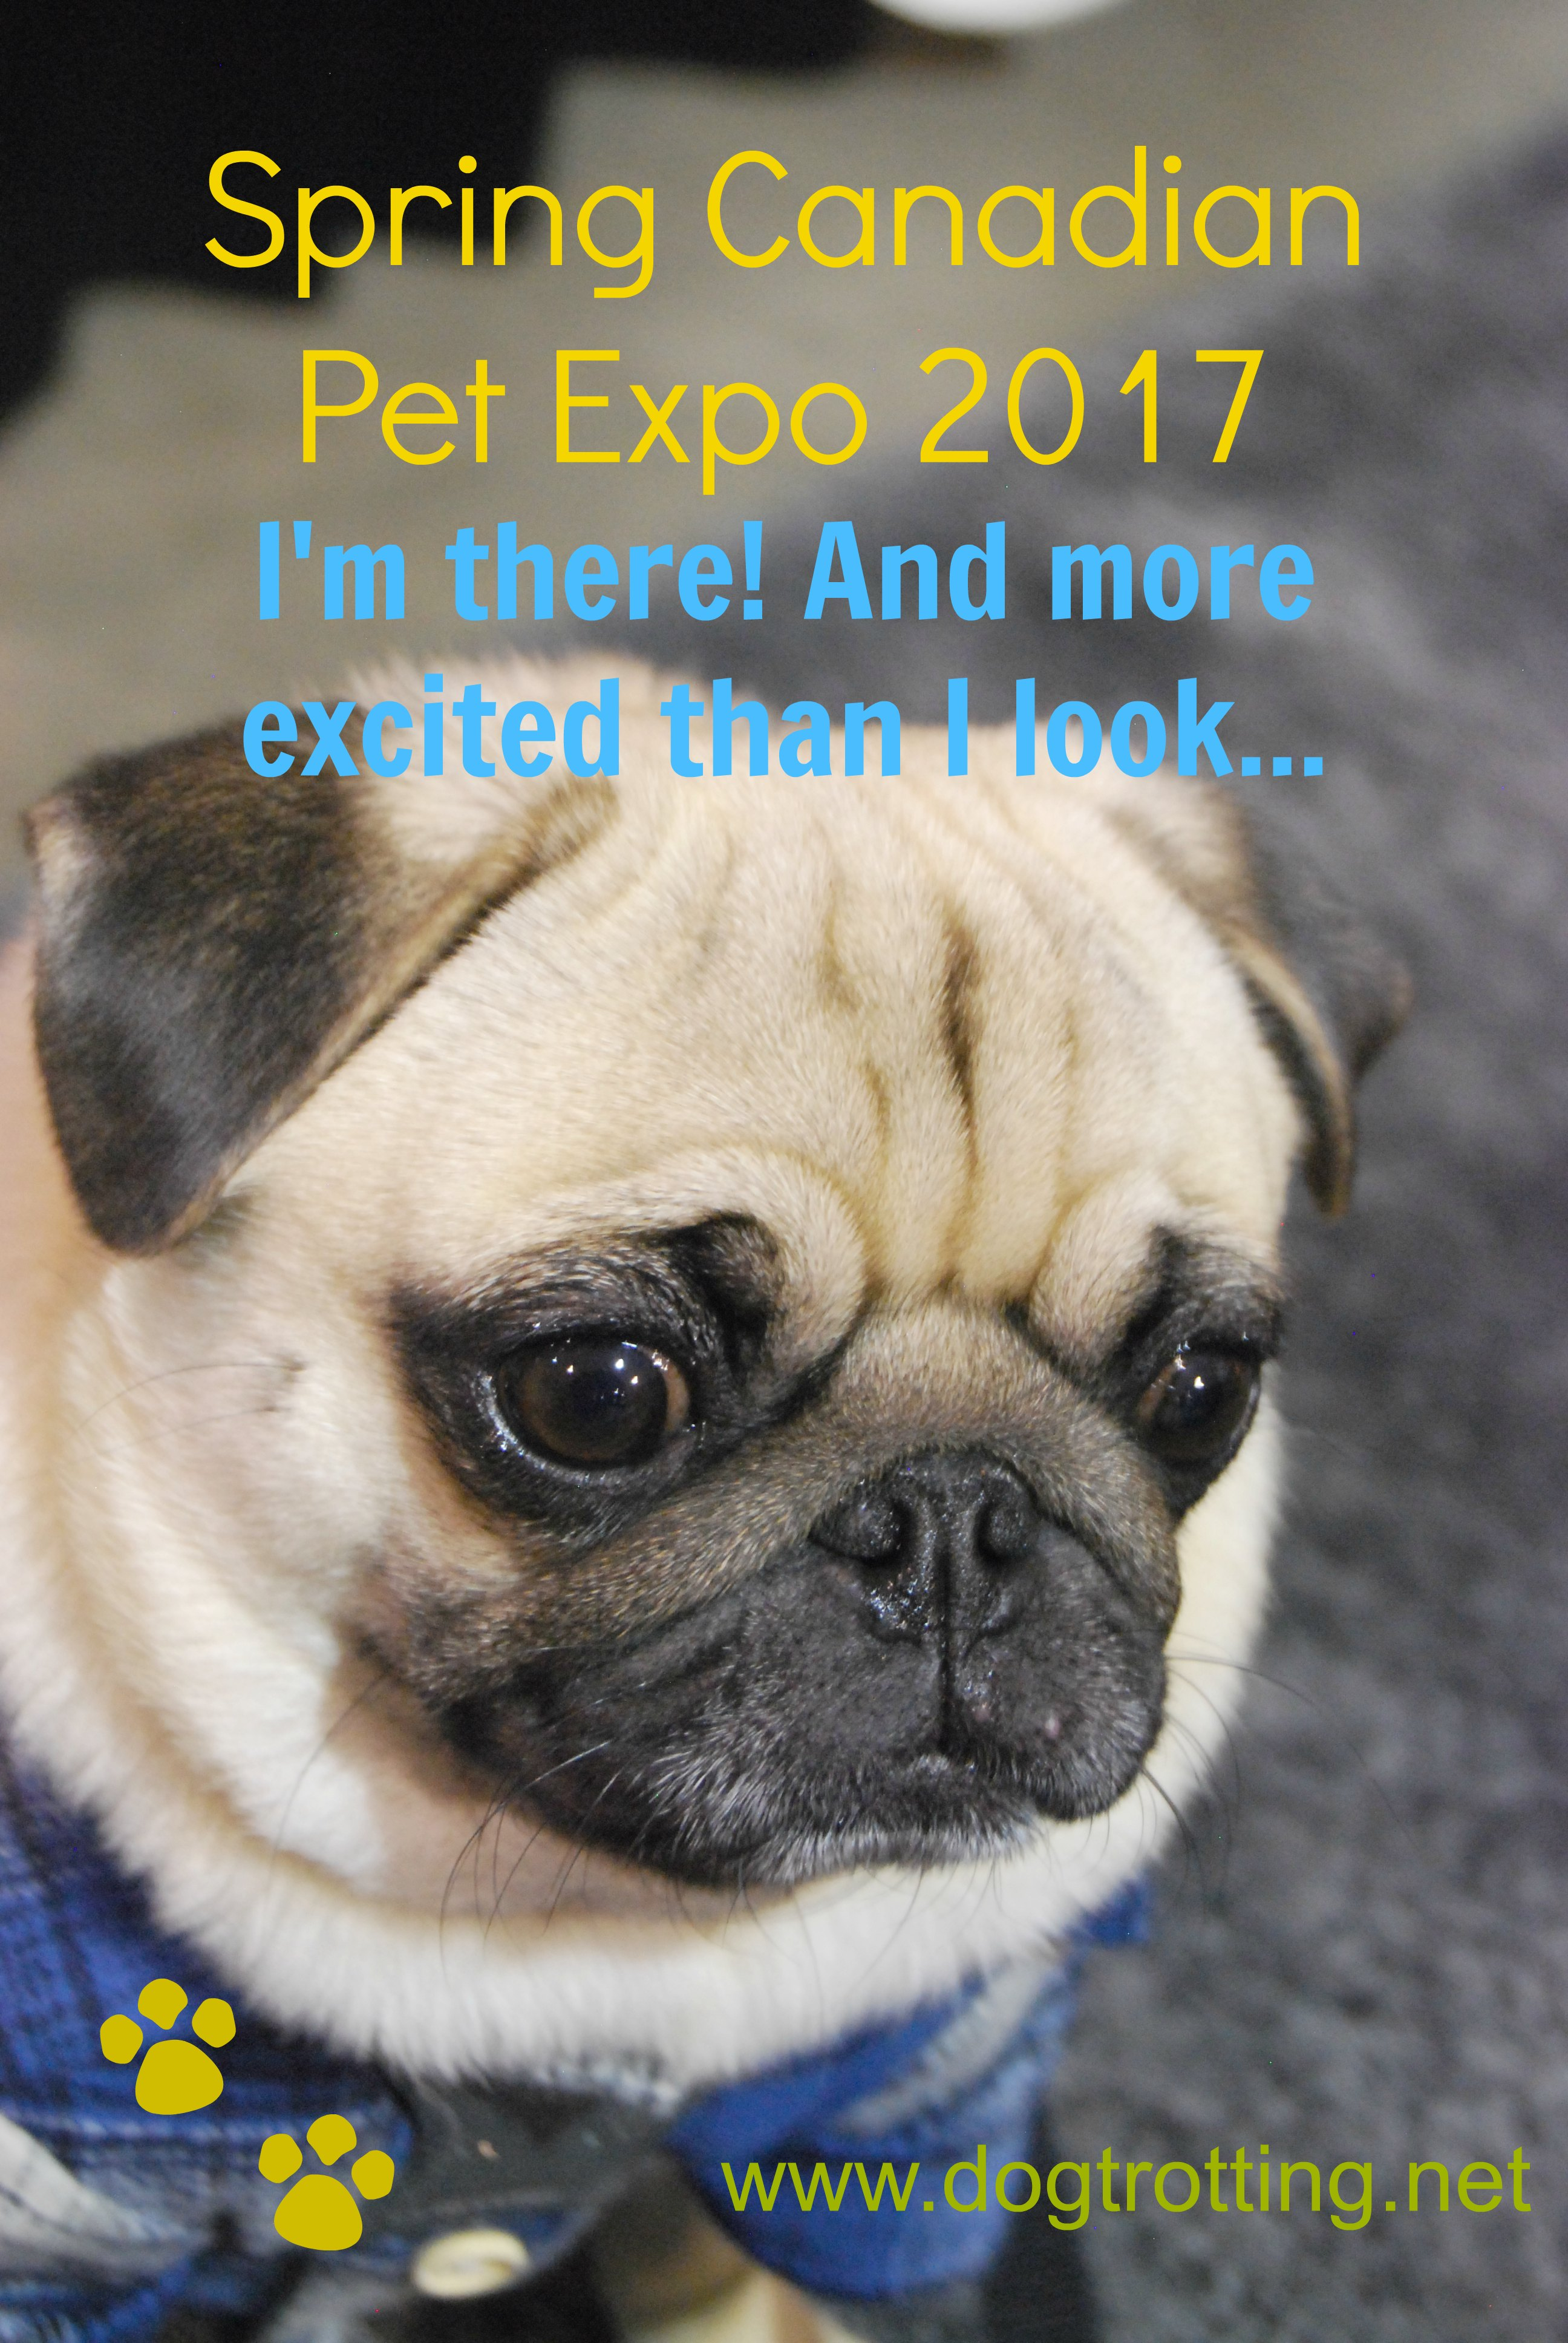 Travel Toronto, ON: Spring 2017 Canadian Pet Expo. It's on!